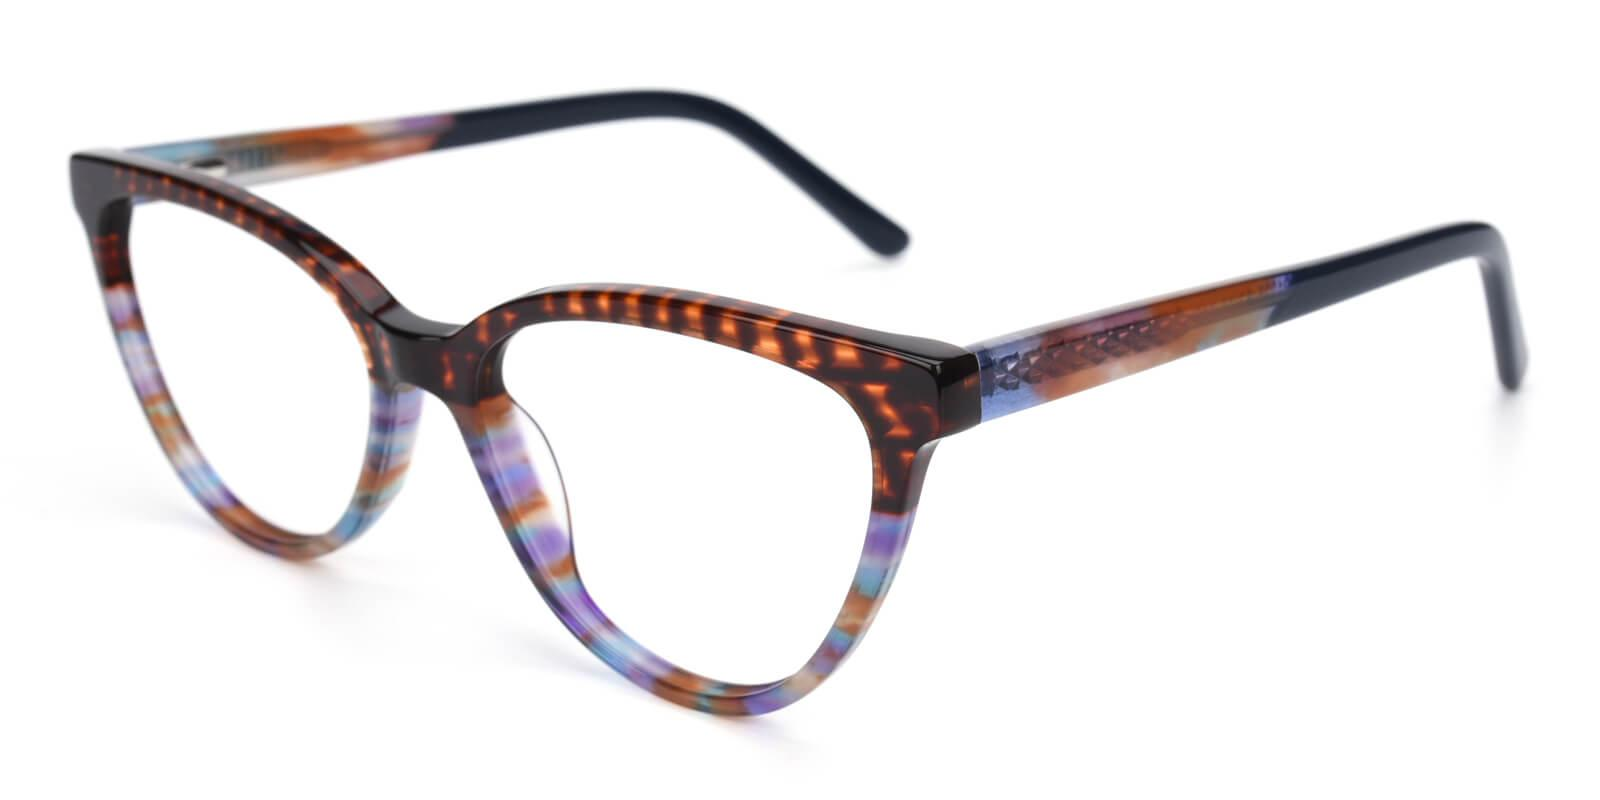 Daphnely-Brown-Oval / Cat-Acetate-Eyeglasses-detail